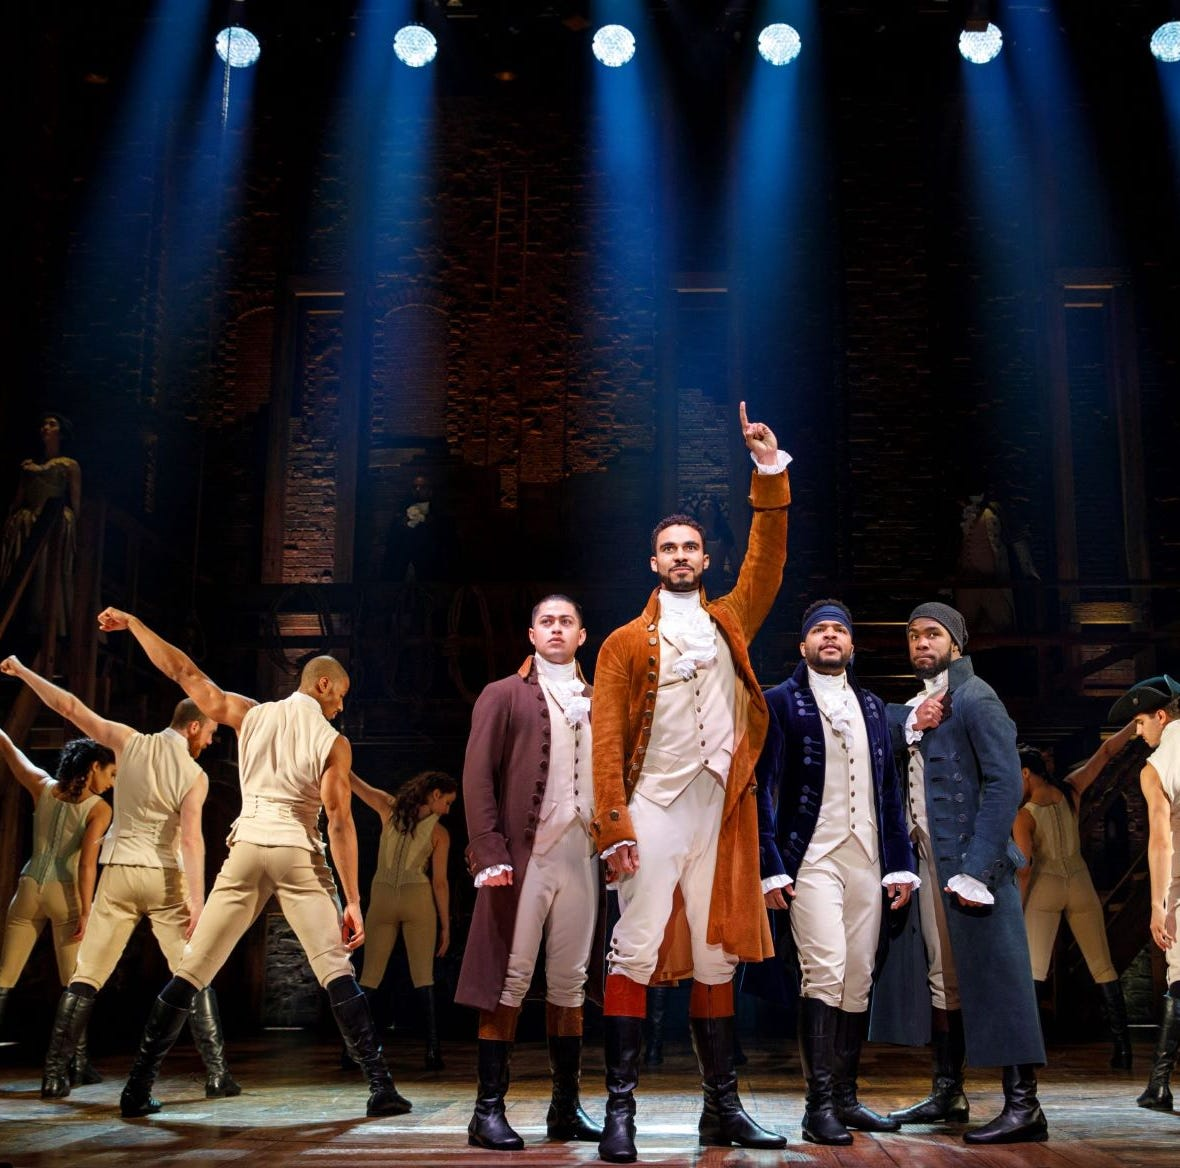 Beware of 'Hamilton' ticket scams, RBTL warns